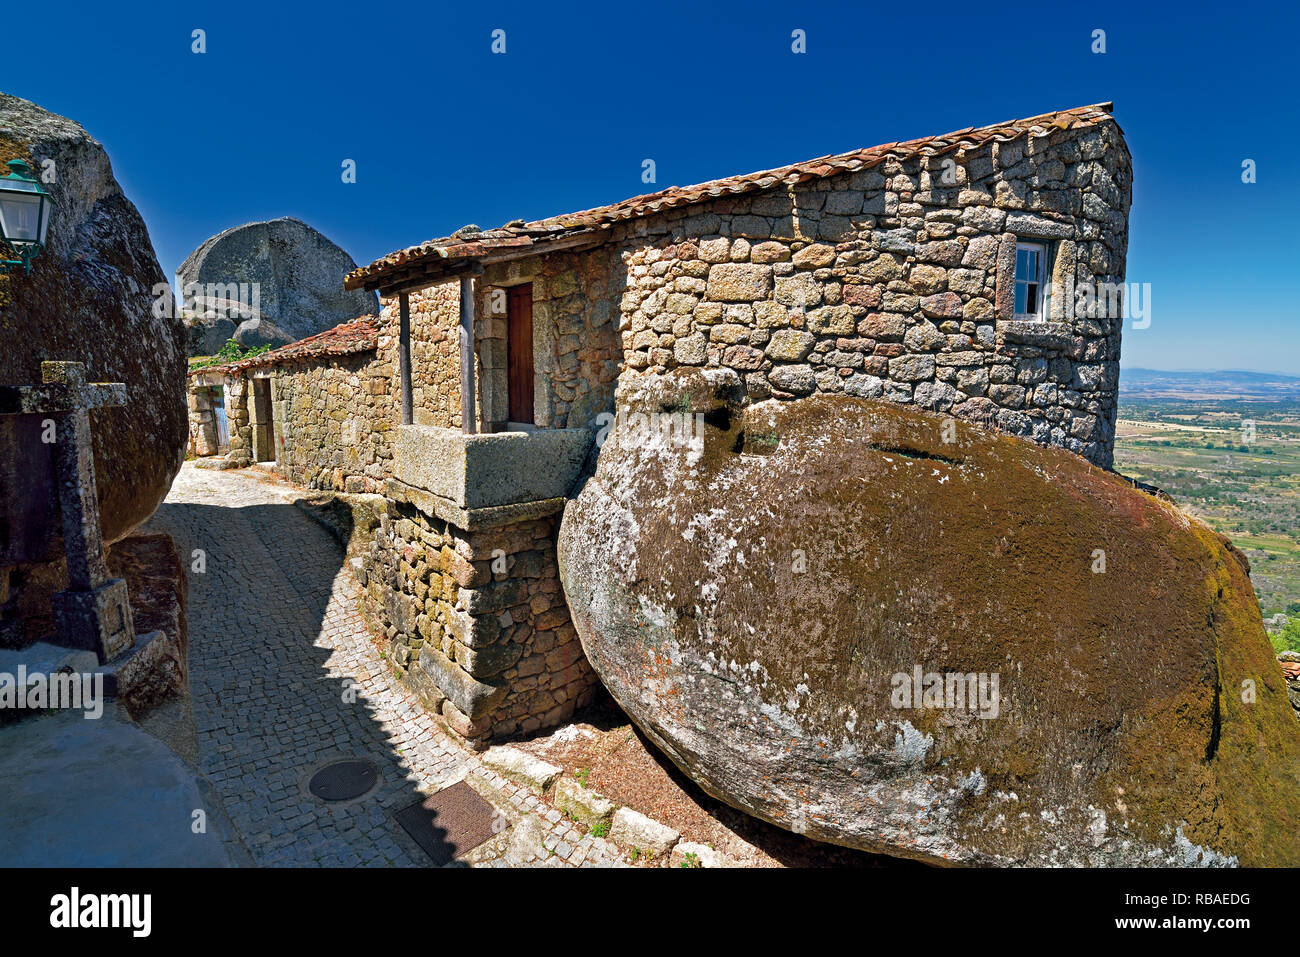 Narrow alley through granite stone houses and huge rocks in historic village Monsanto - Stock Image